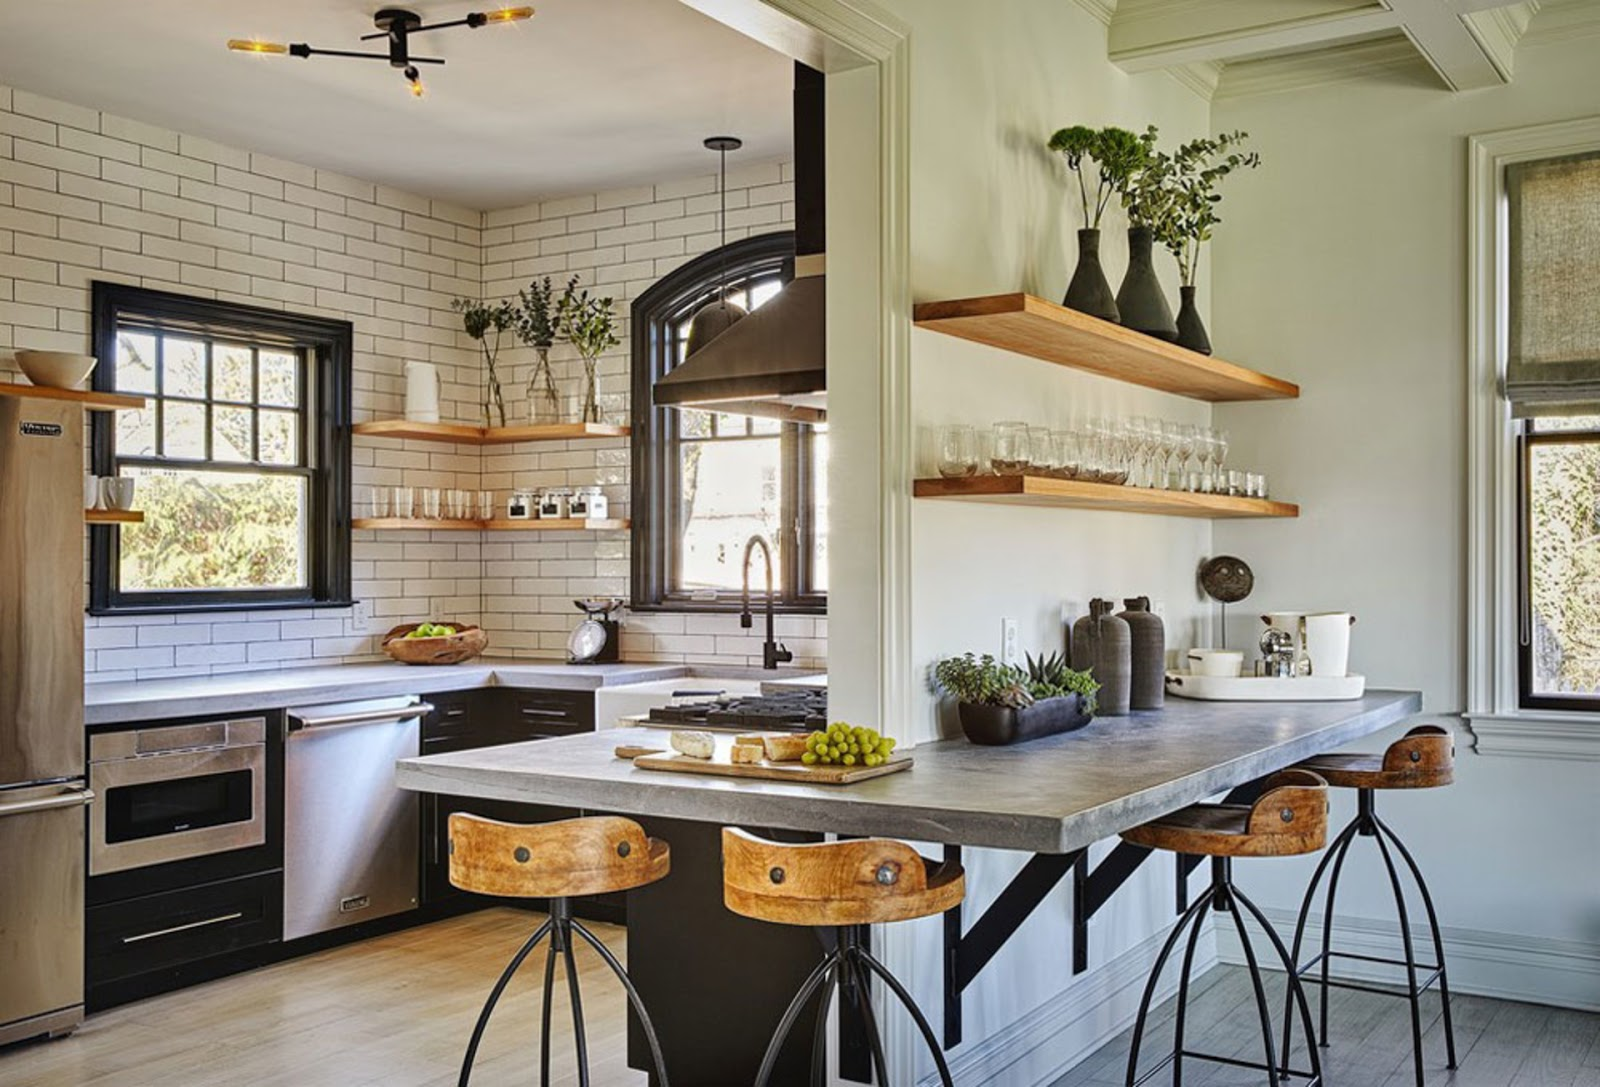 Best Ideas for a Rustic Danish Kitchen with Cool Industrial Touches